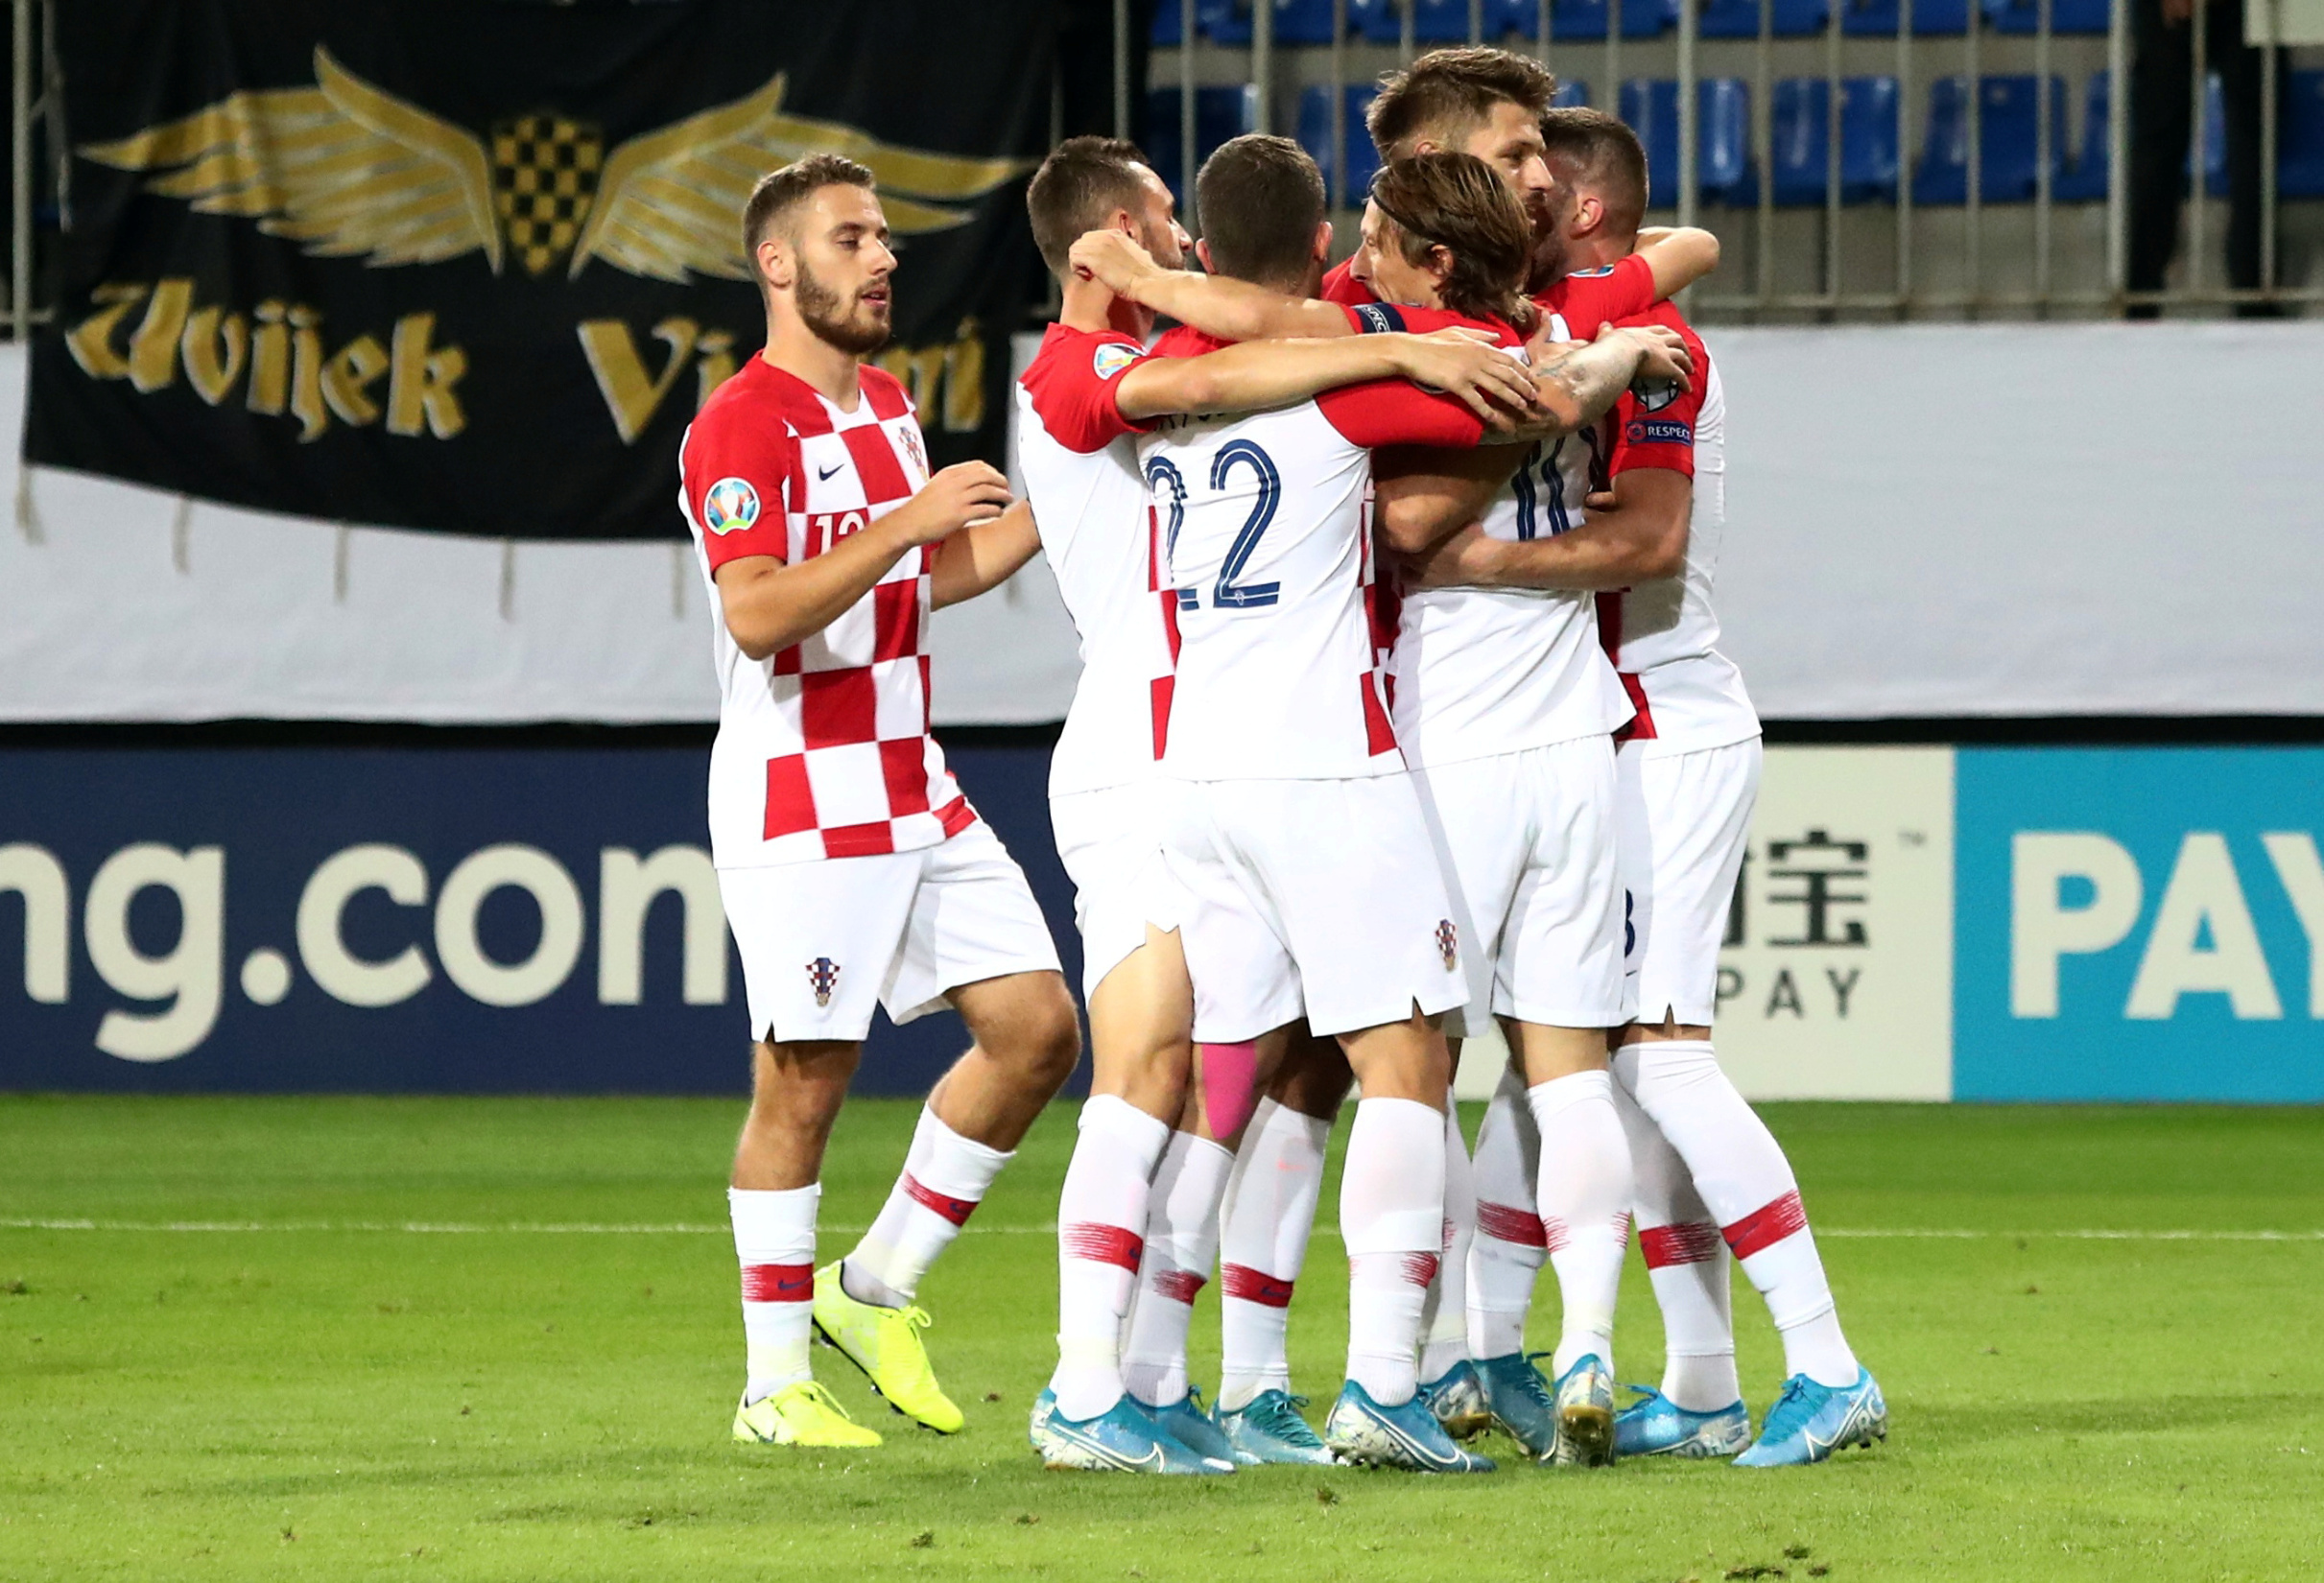 Soccer Football - Euro 2020 Qualifier - Group E - Azerbaijan v Croatia - Bakcell Arena, Baku, Azerbaijan - September 9, 2019  Croatia's Luka Modric celebrates scoring their first goal with team mates   REUTERS/Aziz Karimov - RC115FE5B400